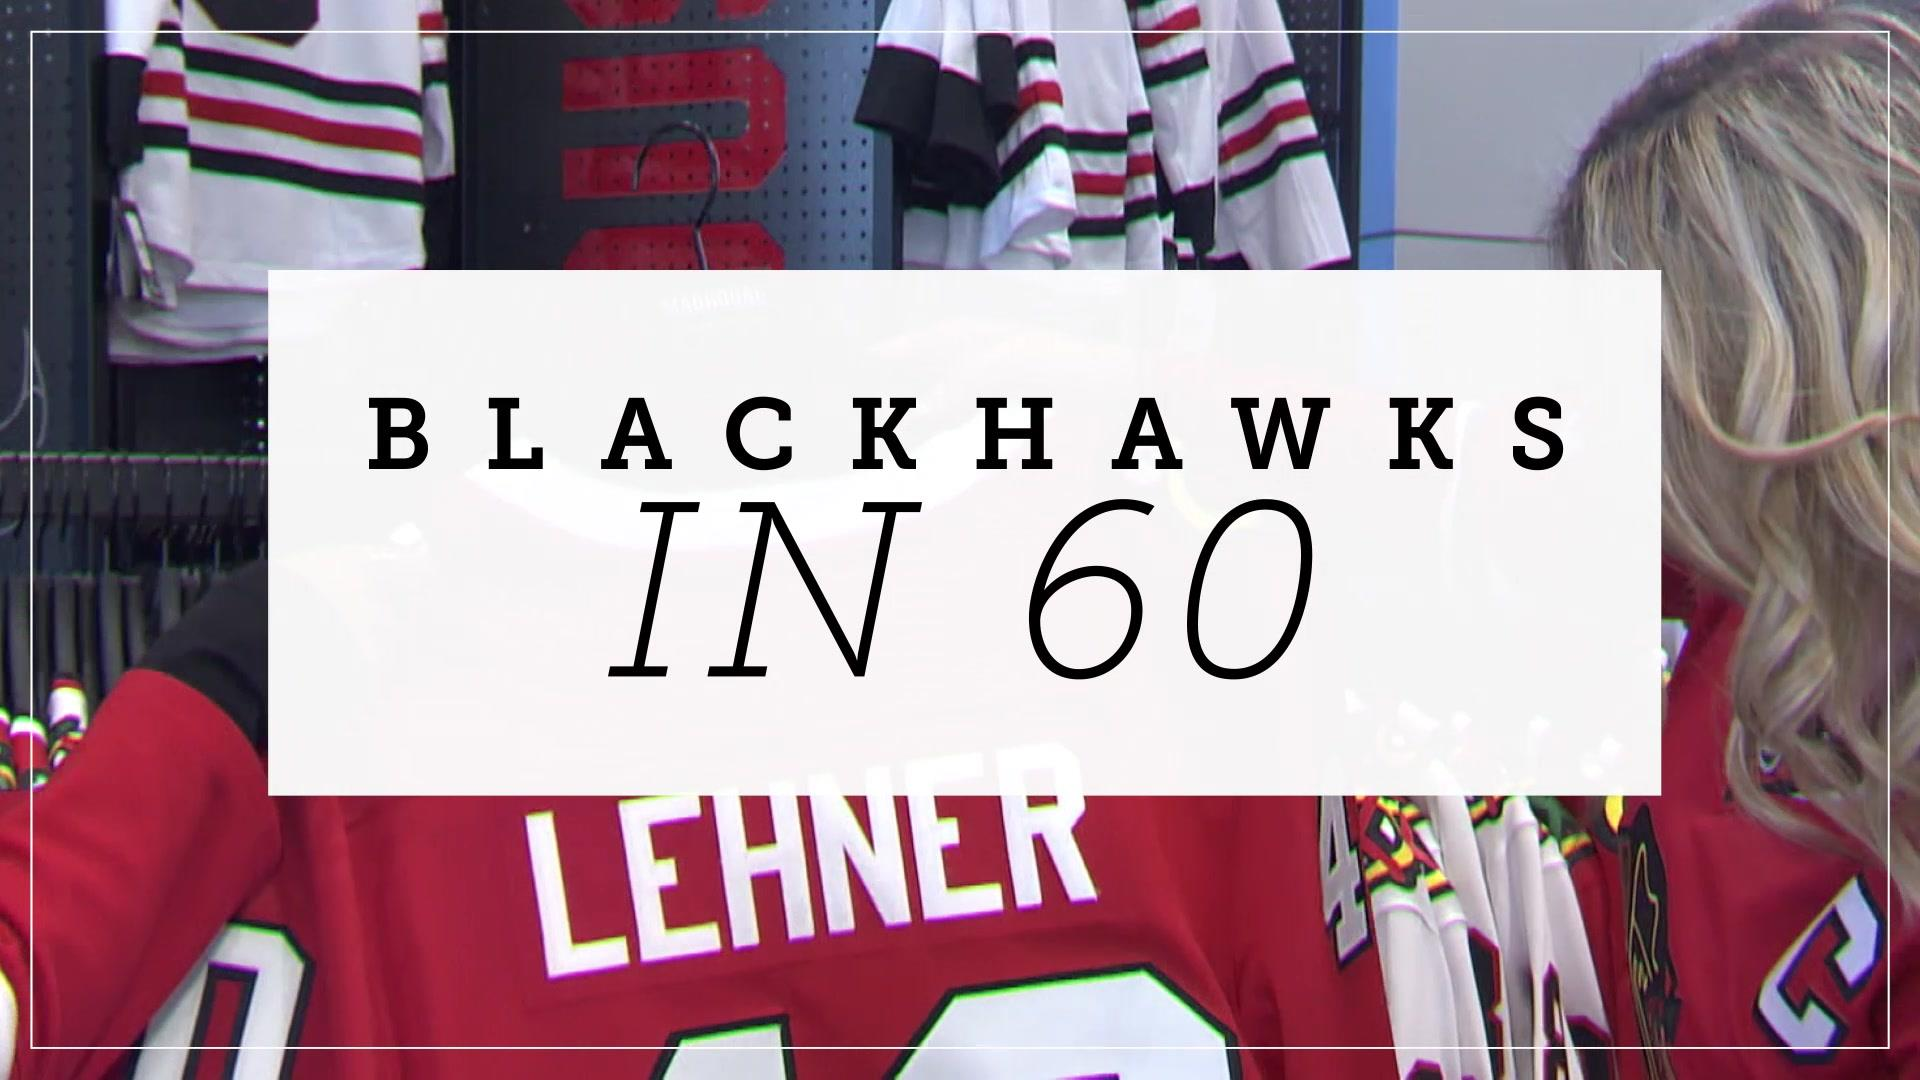 Blackhawks in 60: Hawks fall 3-2 to the Jets in overtime